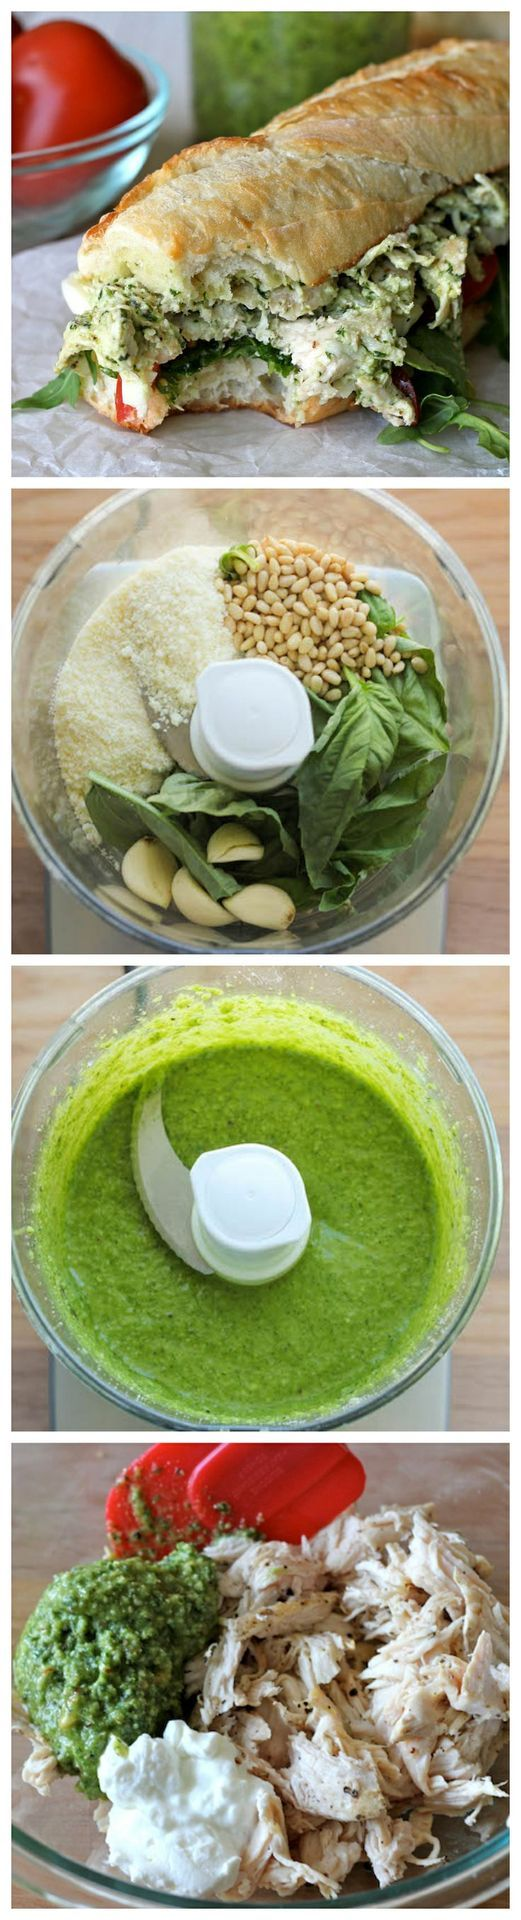 Chicken pesto sandwich - lightened up with greek yogurt